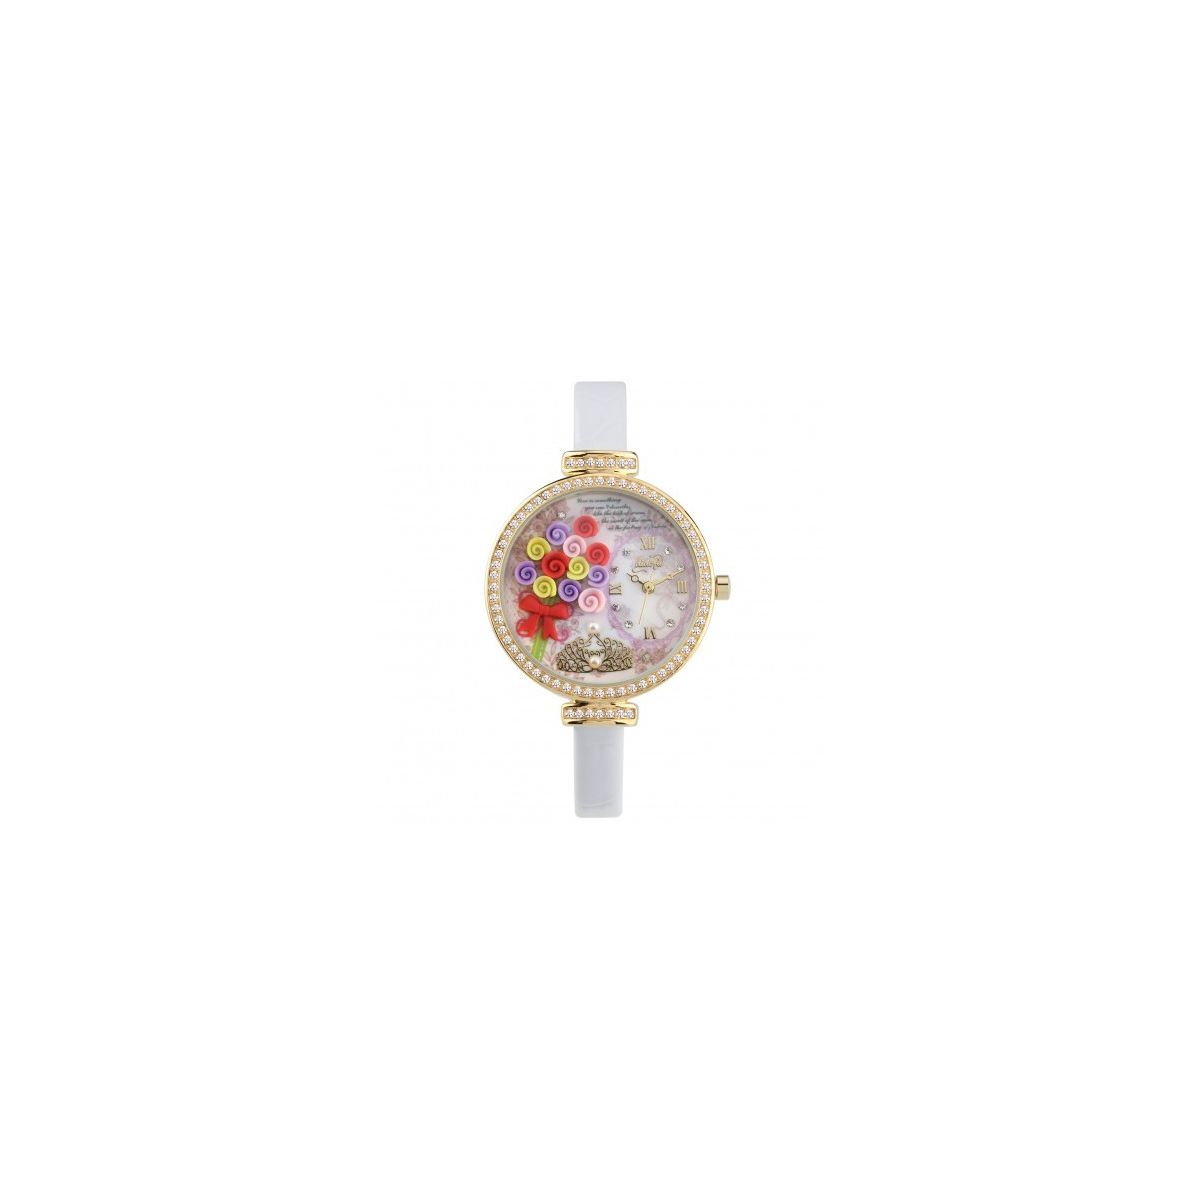 OROLOGIO DONNA 3D DIDOFA' FLOWERS DF-977A